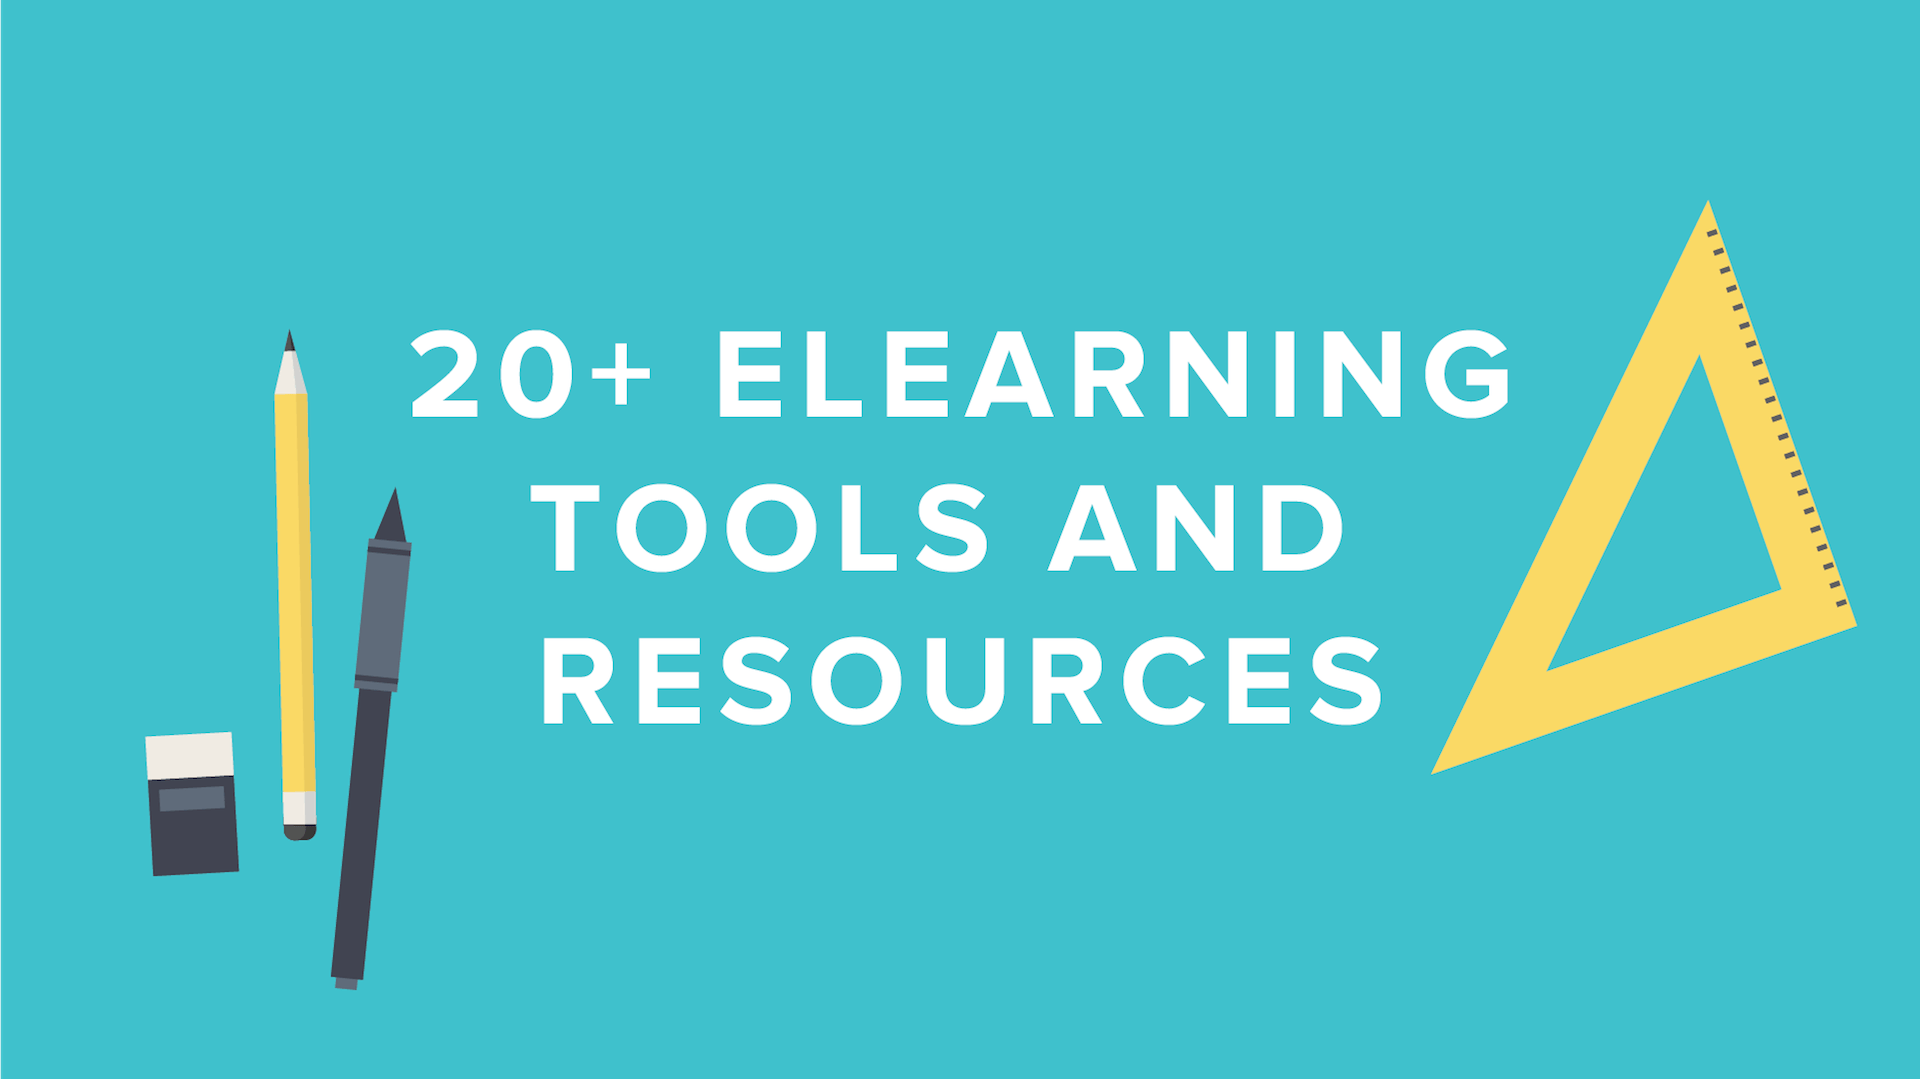 20+ eLearning Tools and Resources - DigitalChalk Blog thumbnail